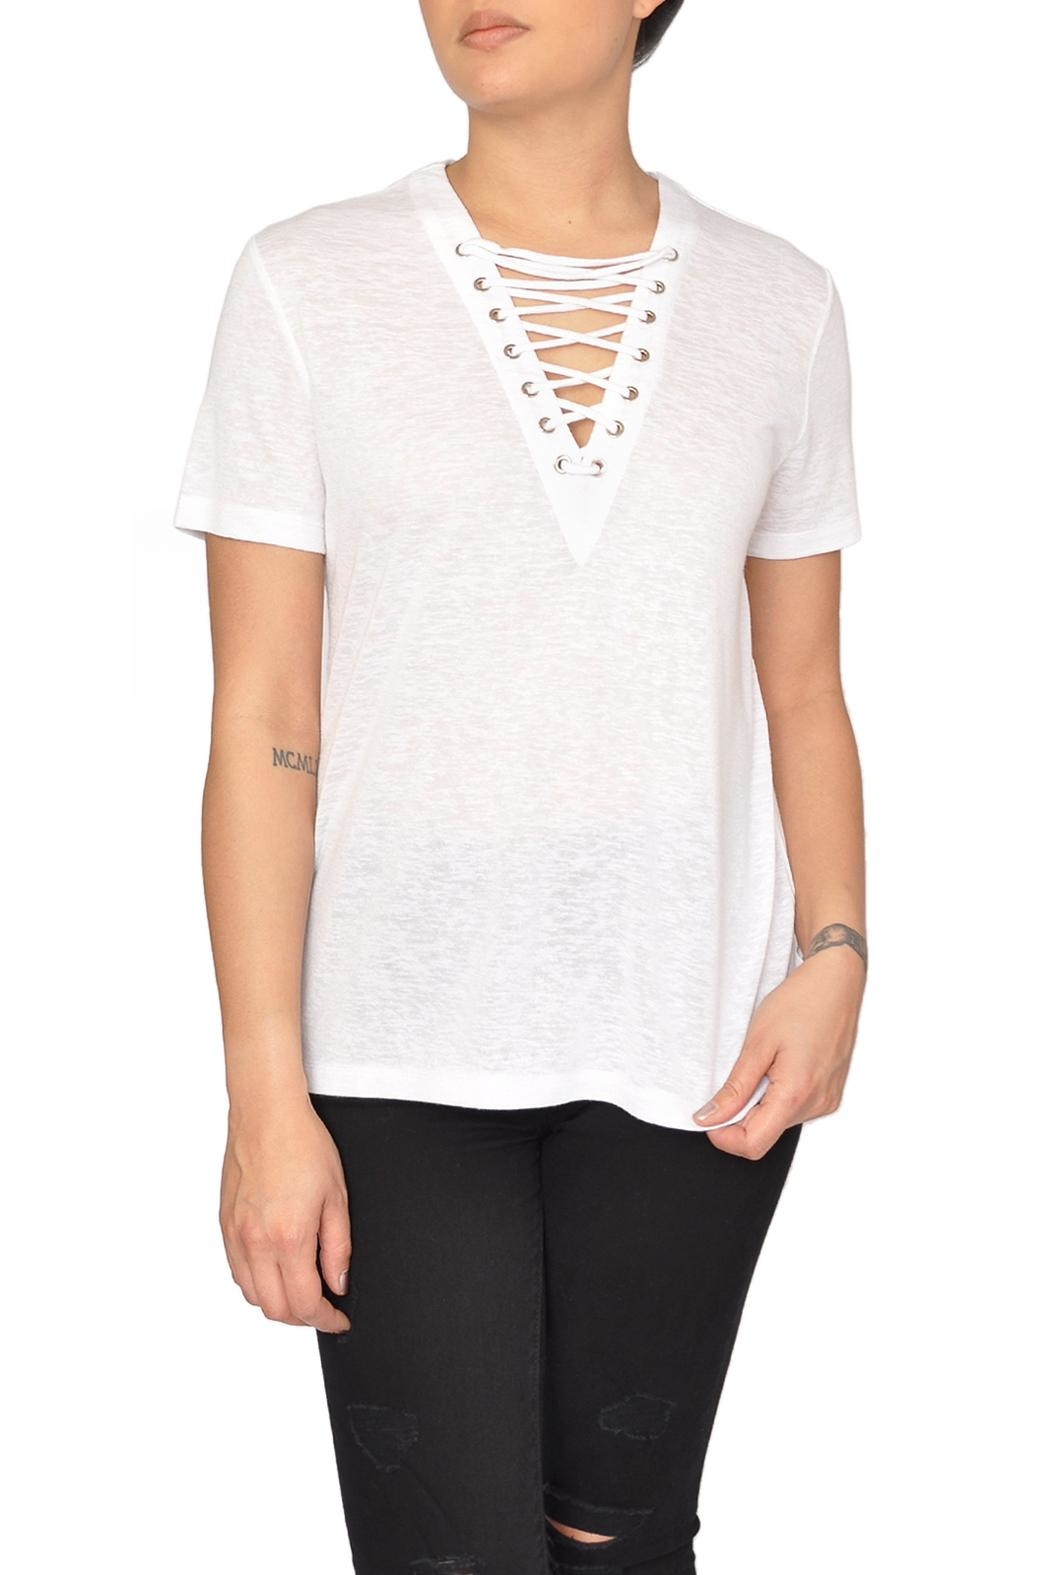 CAARA White Lace-Up Tee - Main Image